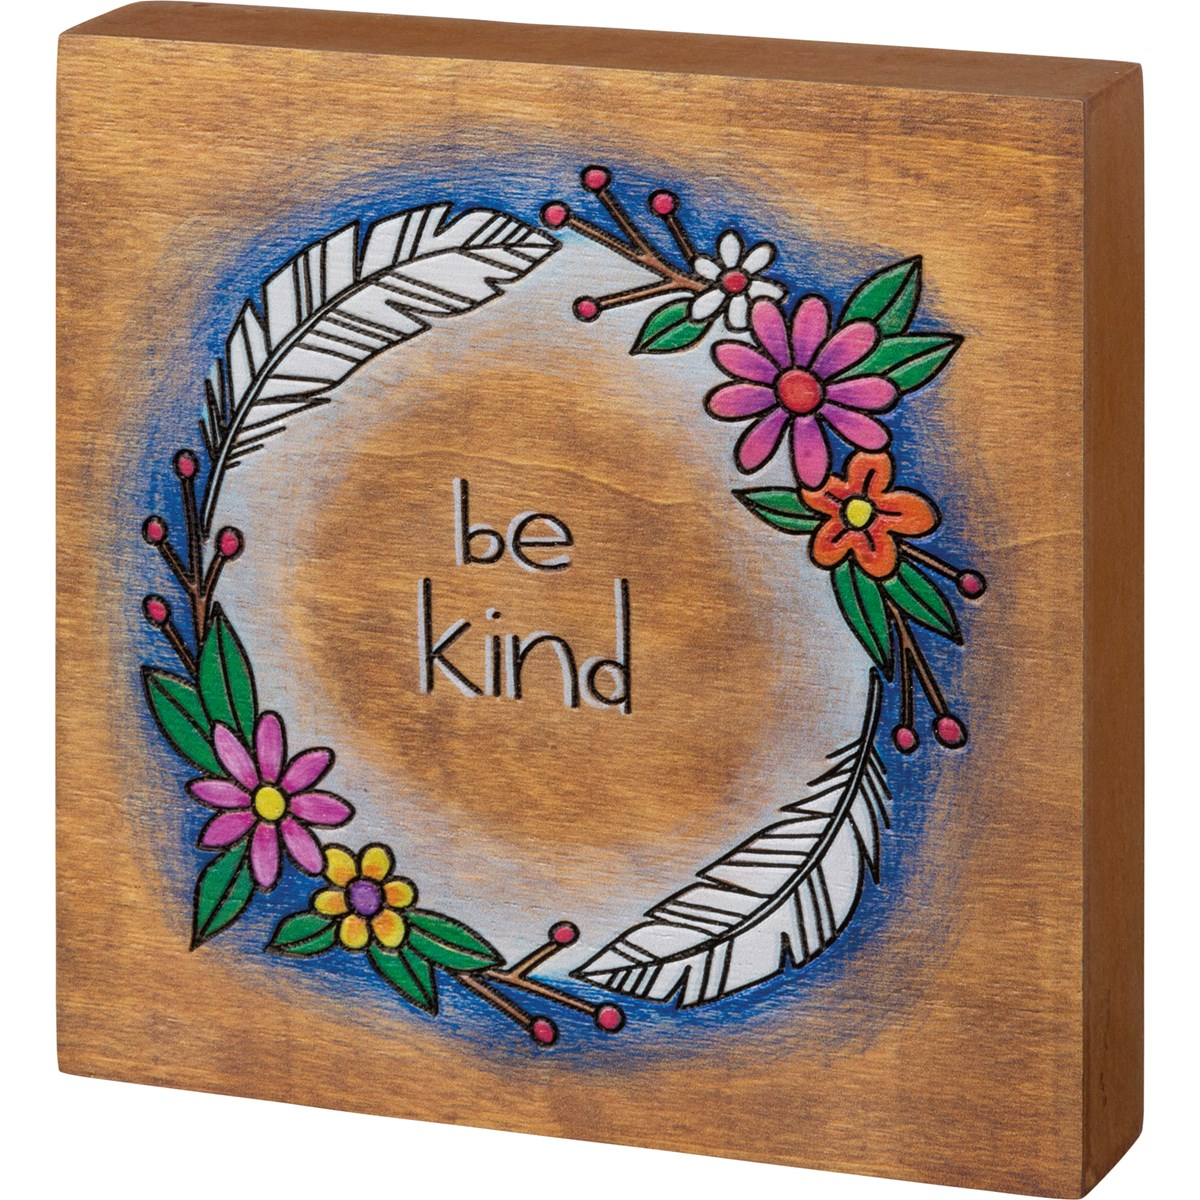 "Block Sign - Be Kind - 5.50"" x 5.50"" x 1"" - Wood, Paper"